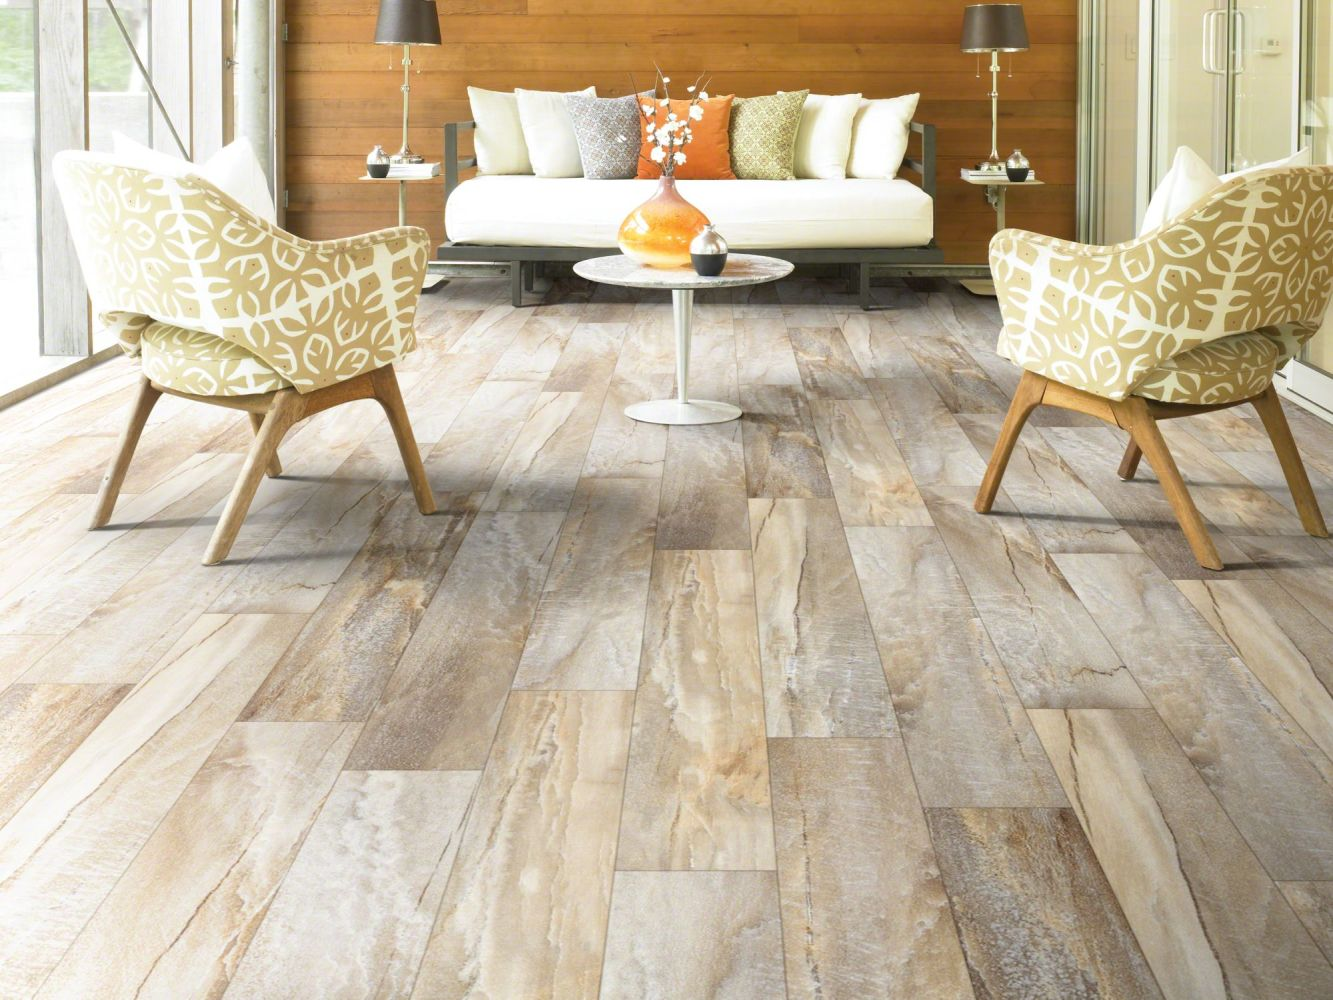 Shaw Floors Vinyl Property Solutions Easy Fashion Ginger 00605_VPS50